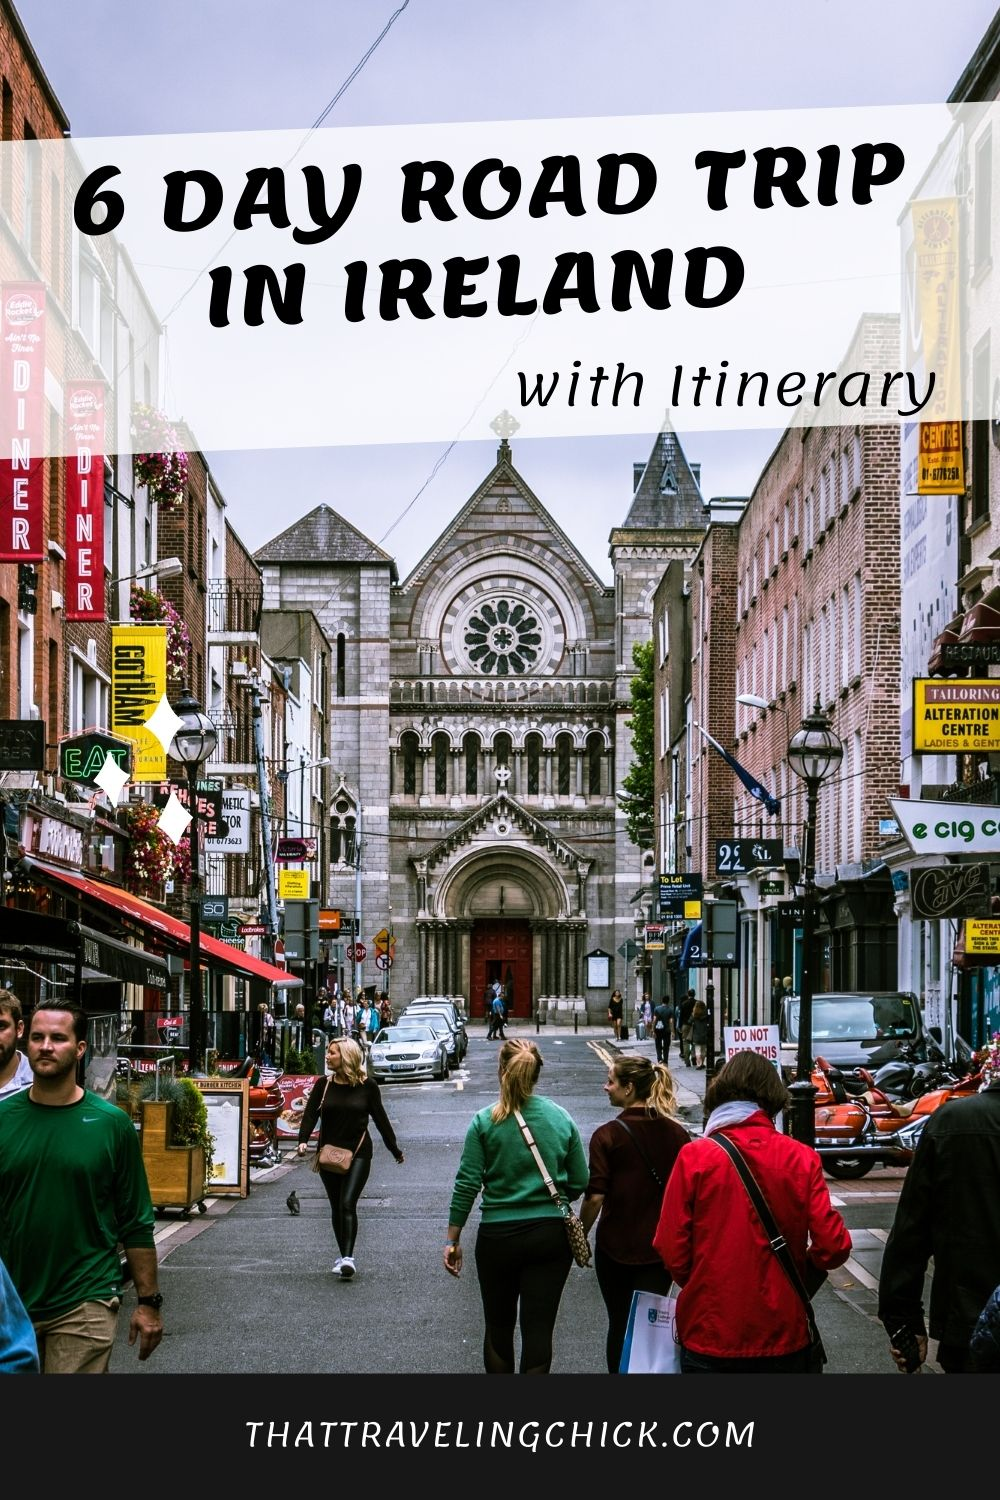 6 Day Road Trip in Ireland with Itinerary #ireland